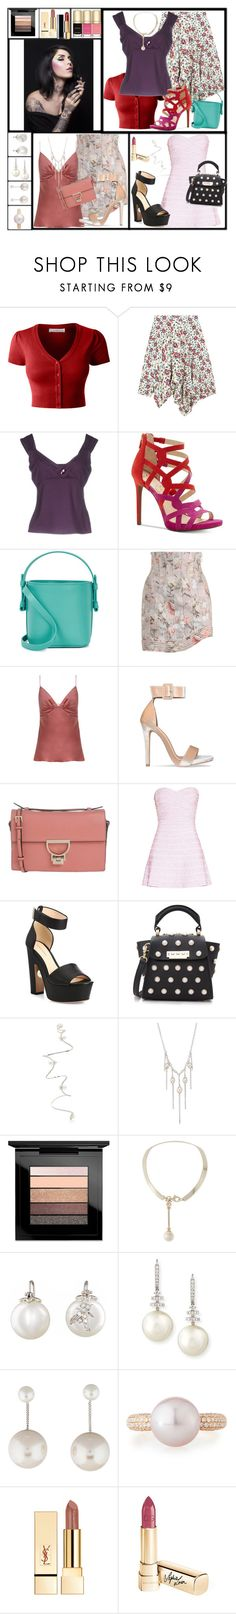 """""""Template 2"""" by denibrad ❤ liked on Polyvore featuring LE3NO, Isabel Marant, Diana Gallesi, Jessica Simpson, Nico Giani, Zimmermann, Coccinelle, Hervé Léger, Nicholas Kirkwood and ZAC Zac Posen"""